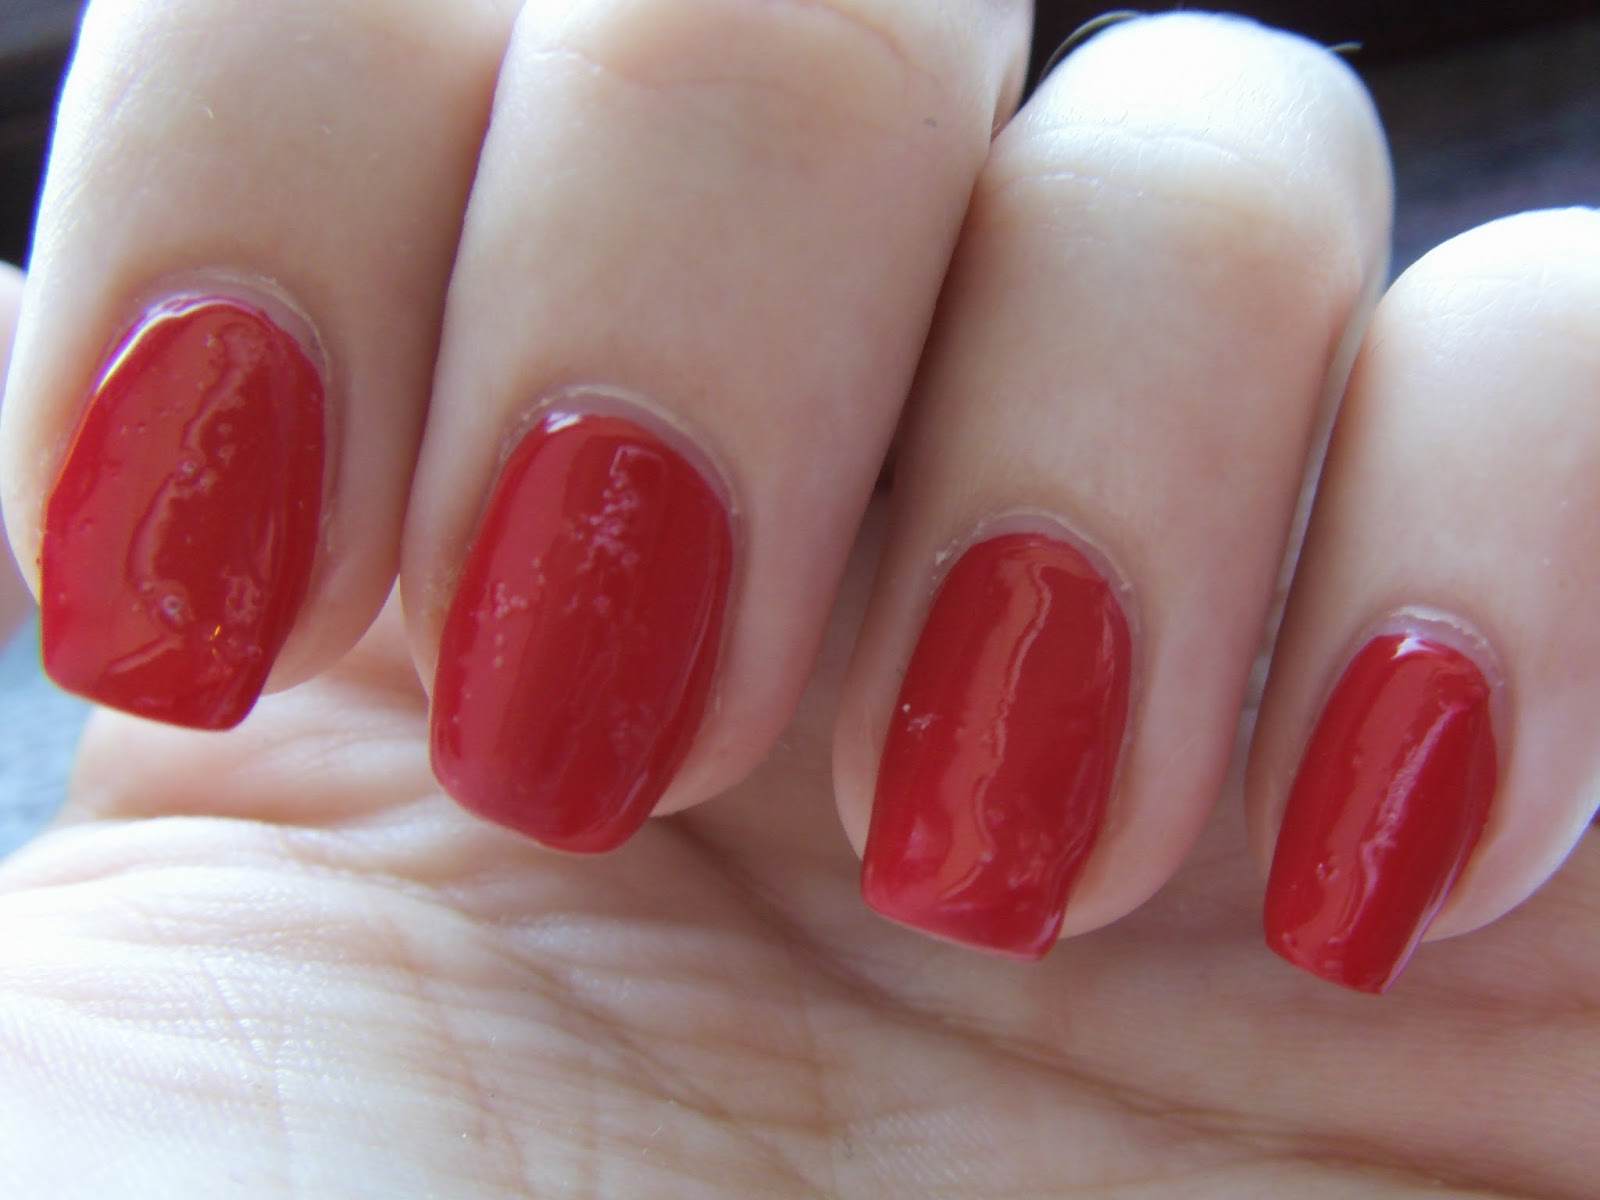 Nails Inc Gel manicure - Debenhams Meadowhall   The Little Blog of ...